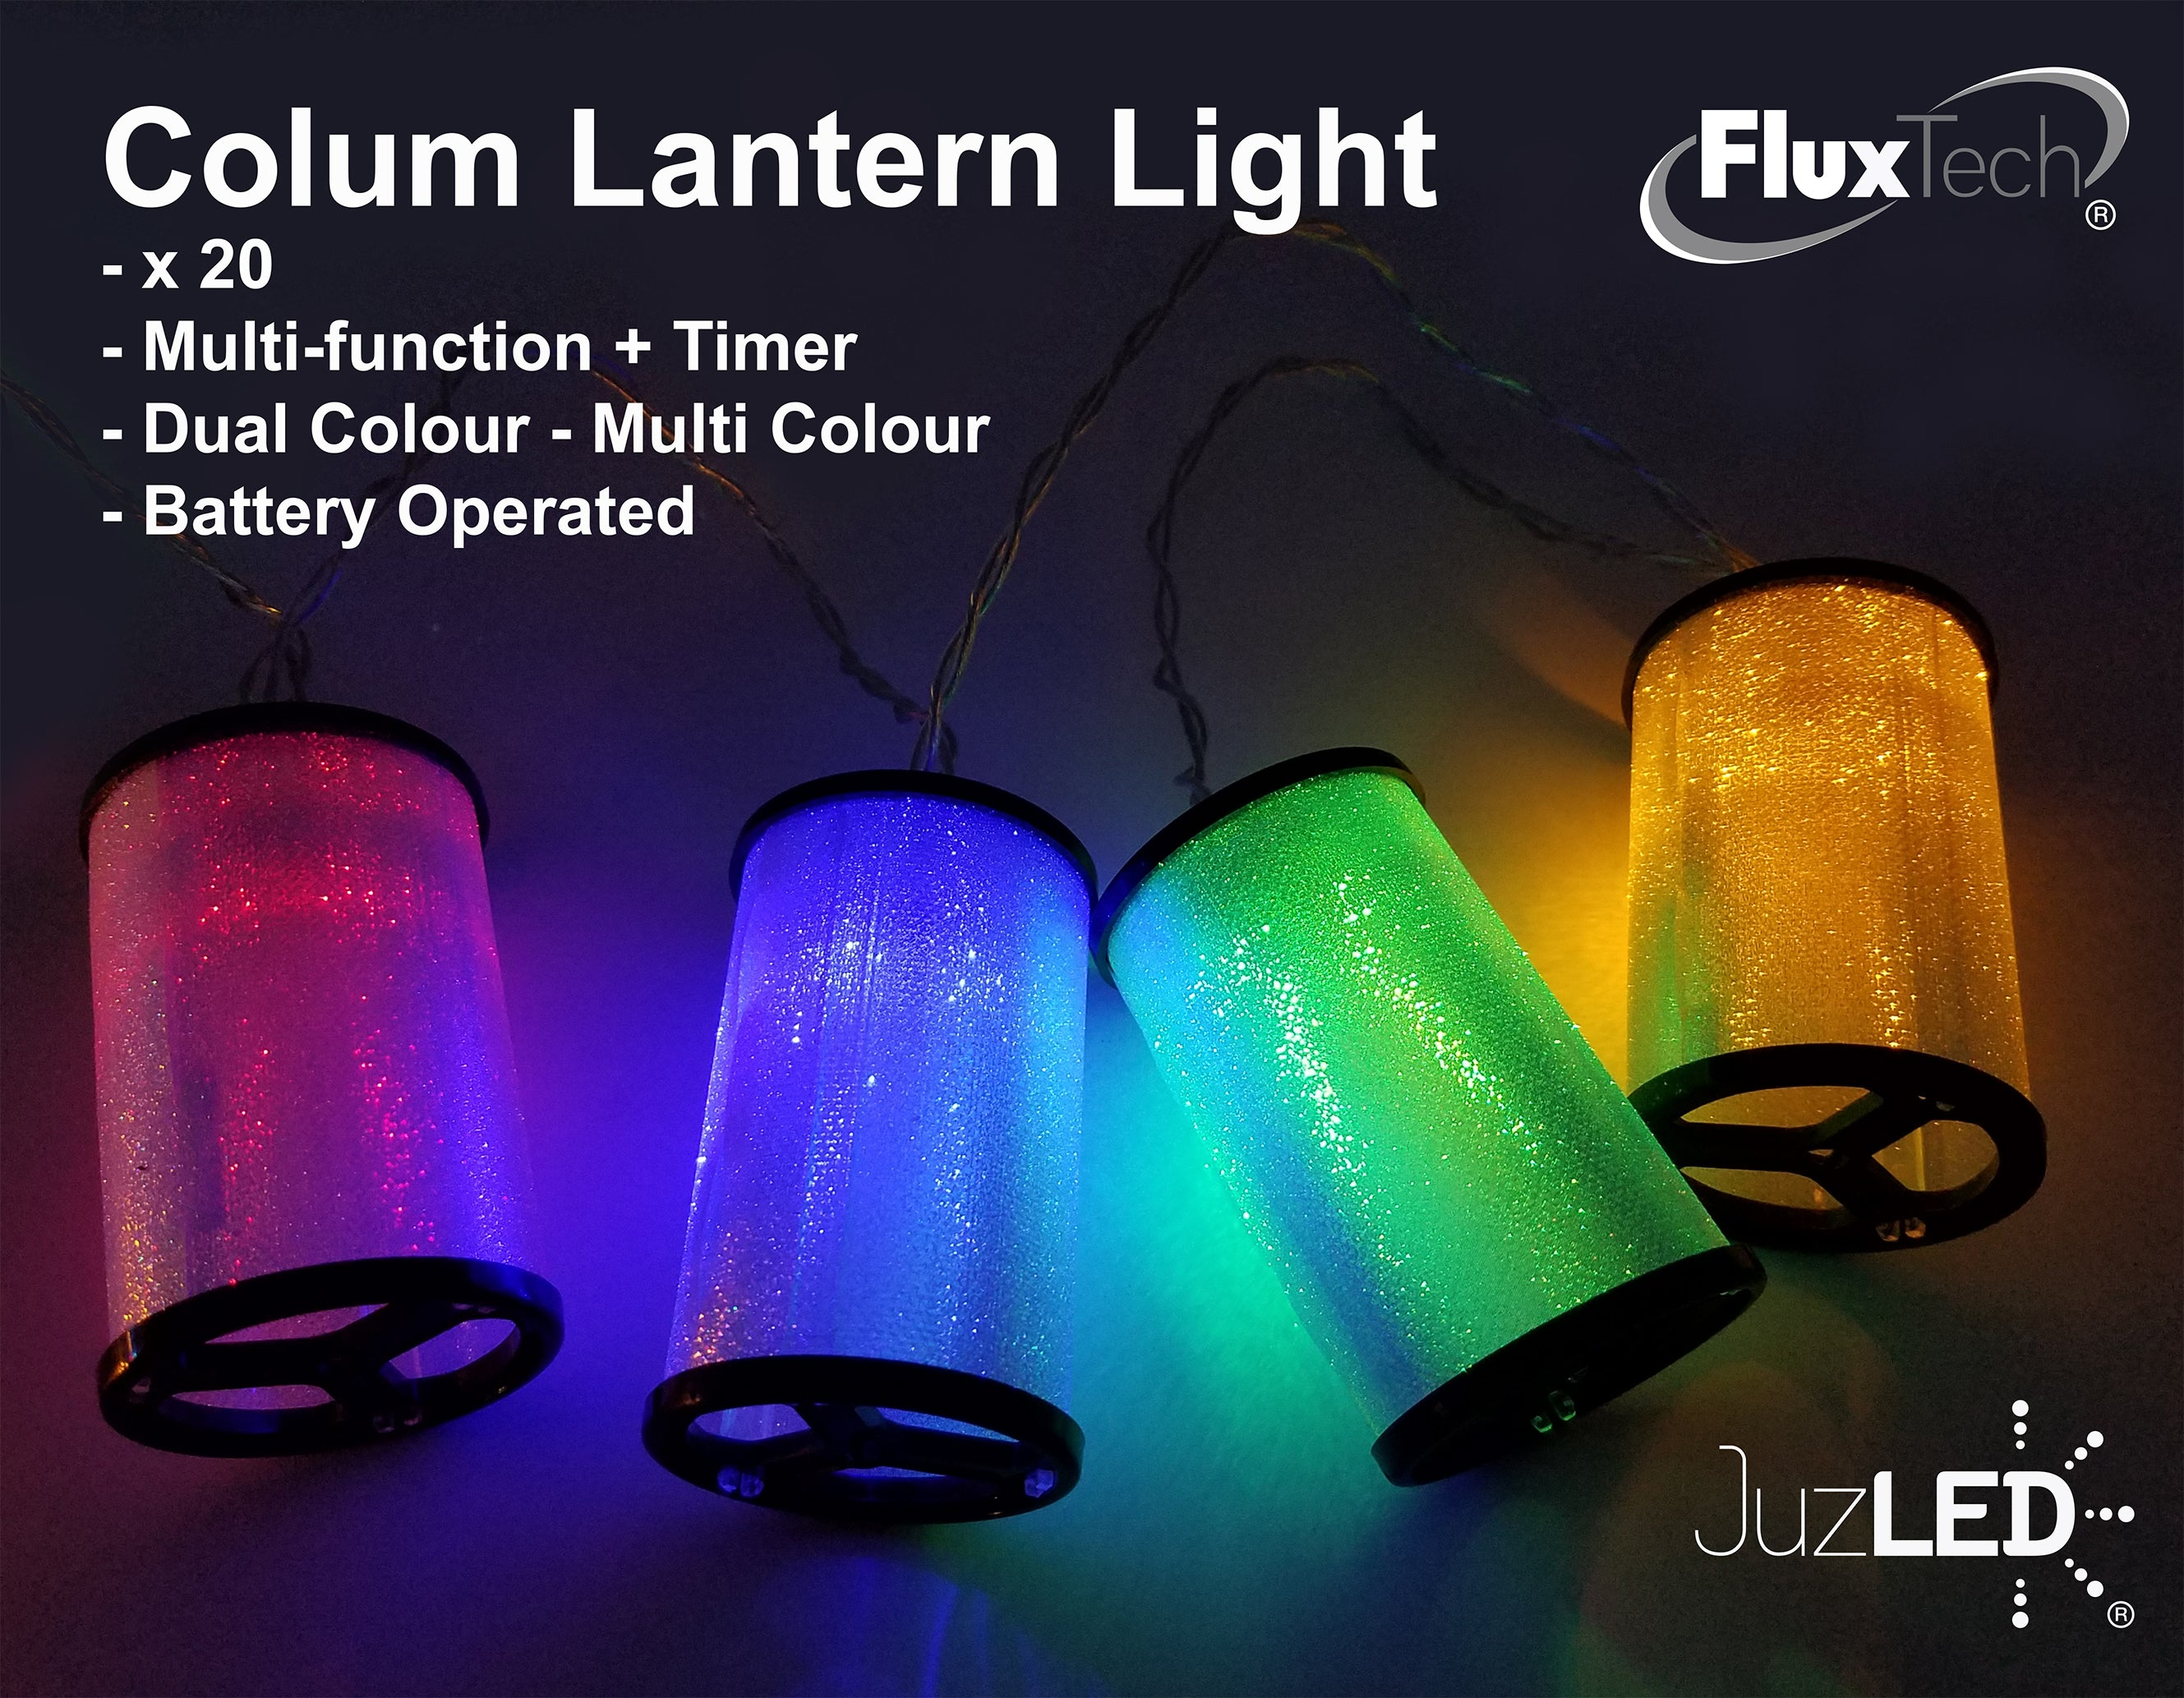 FluxTech - Colum Lantern 20 x Dual Colour LED String Lights by JustLED – Multi-function Effect – Timer function - Battery Operated